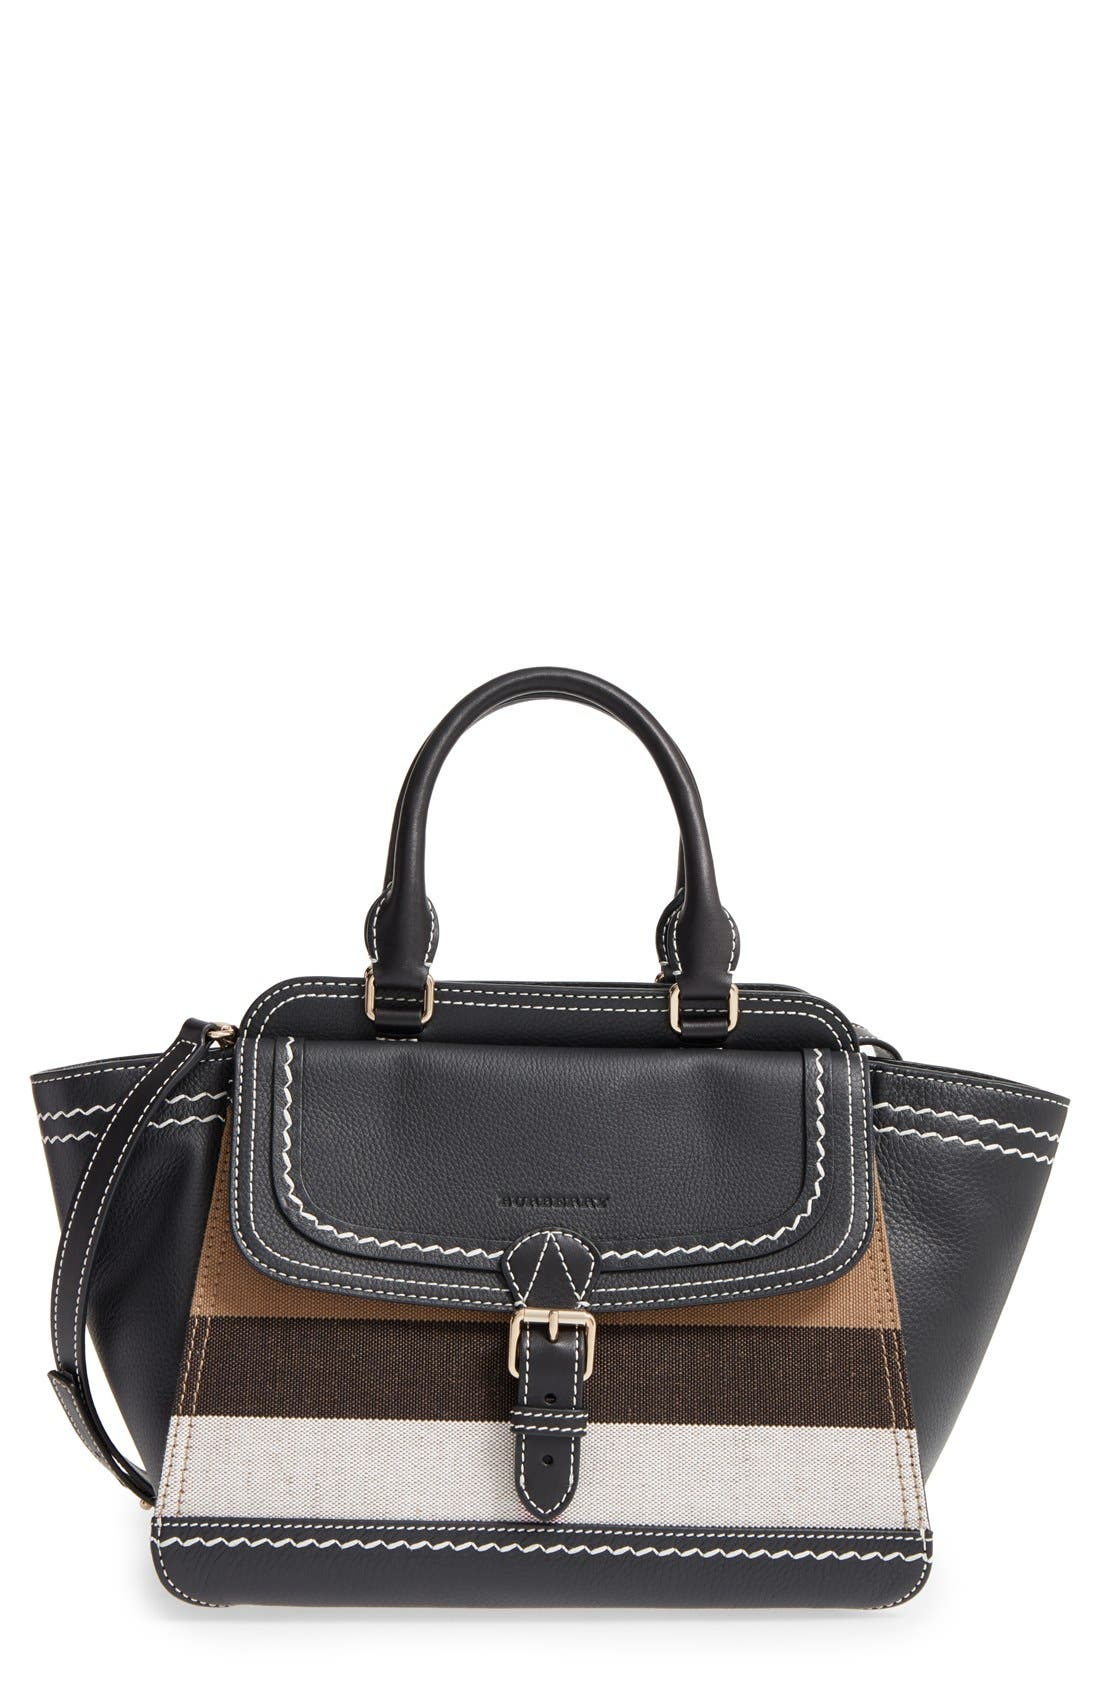 Main Image - Burberry Medium Harcourt Check & Leather Tote